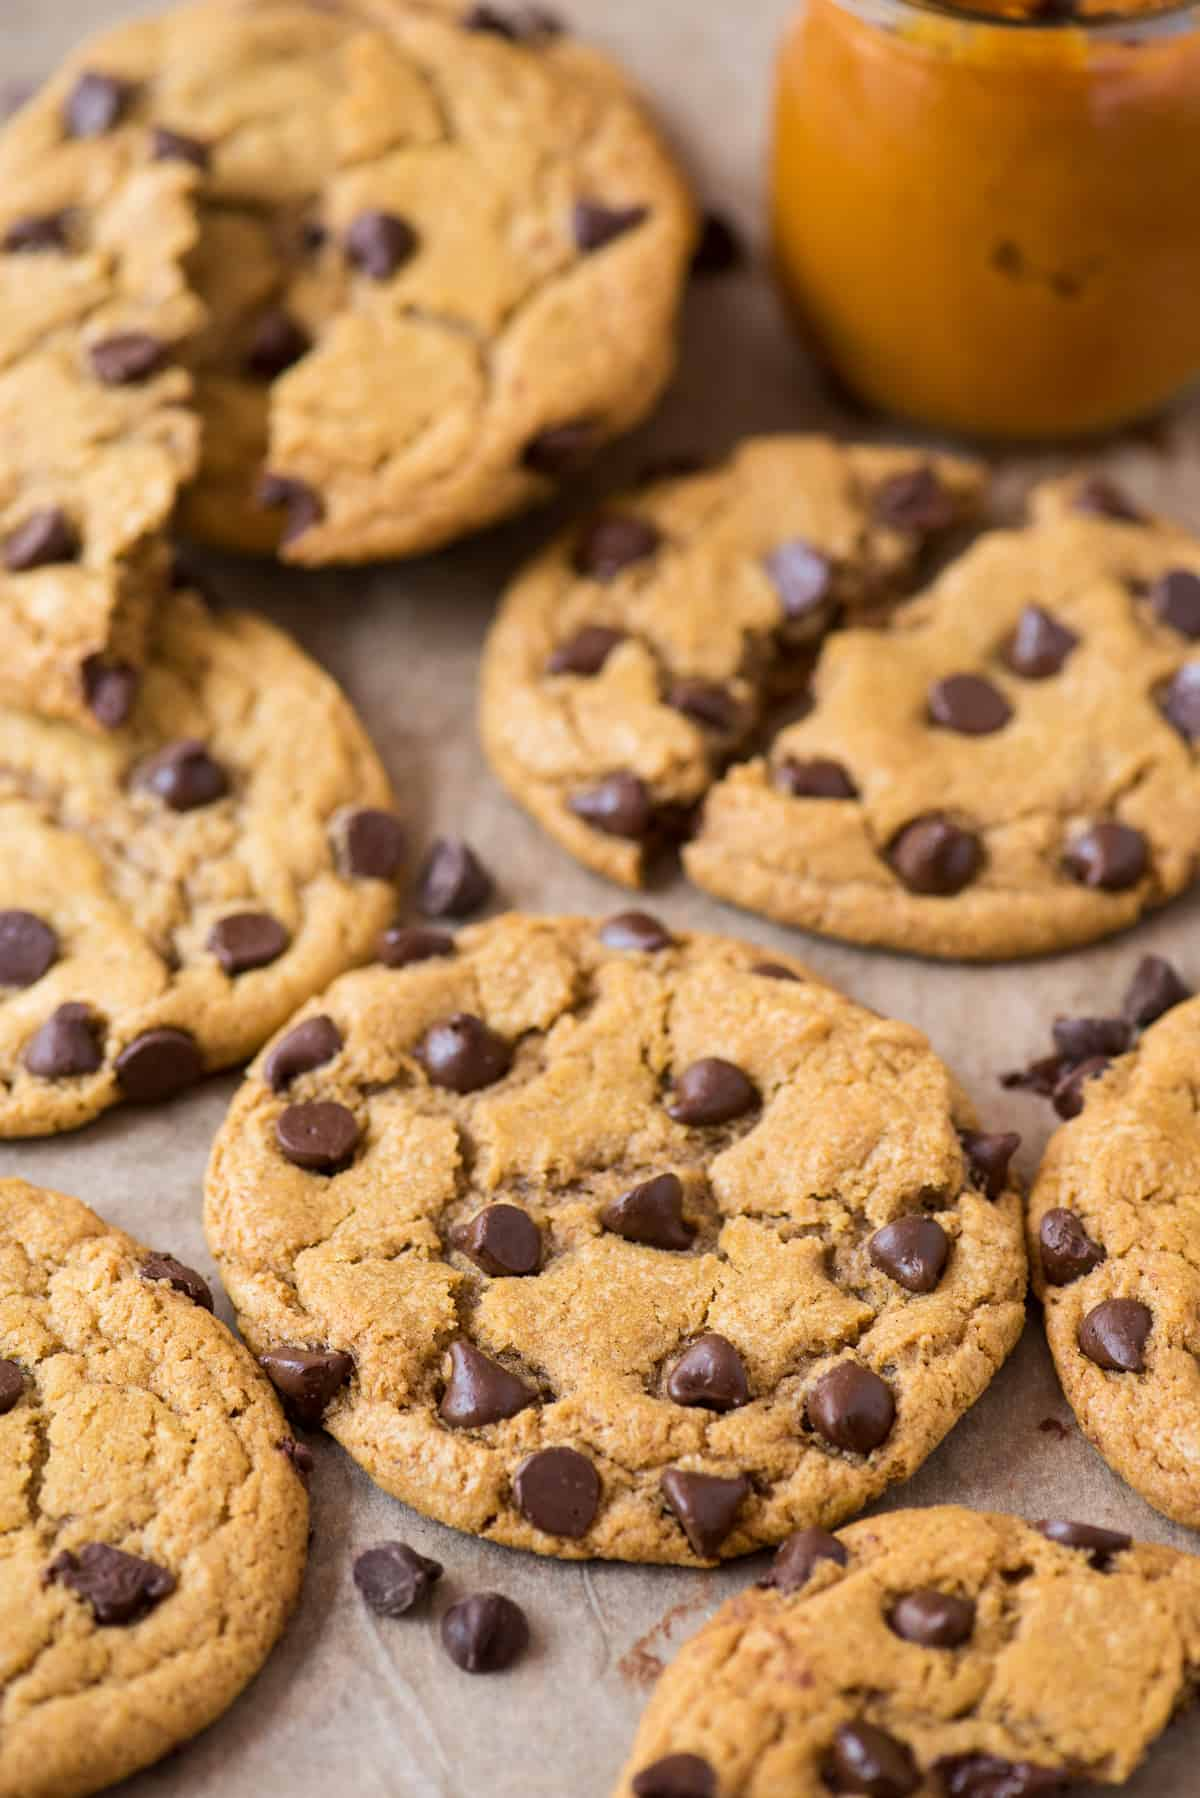 pumpkin chocolate chip cookies arranged on brown parchment paper with jar of pumpkin puree in the background